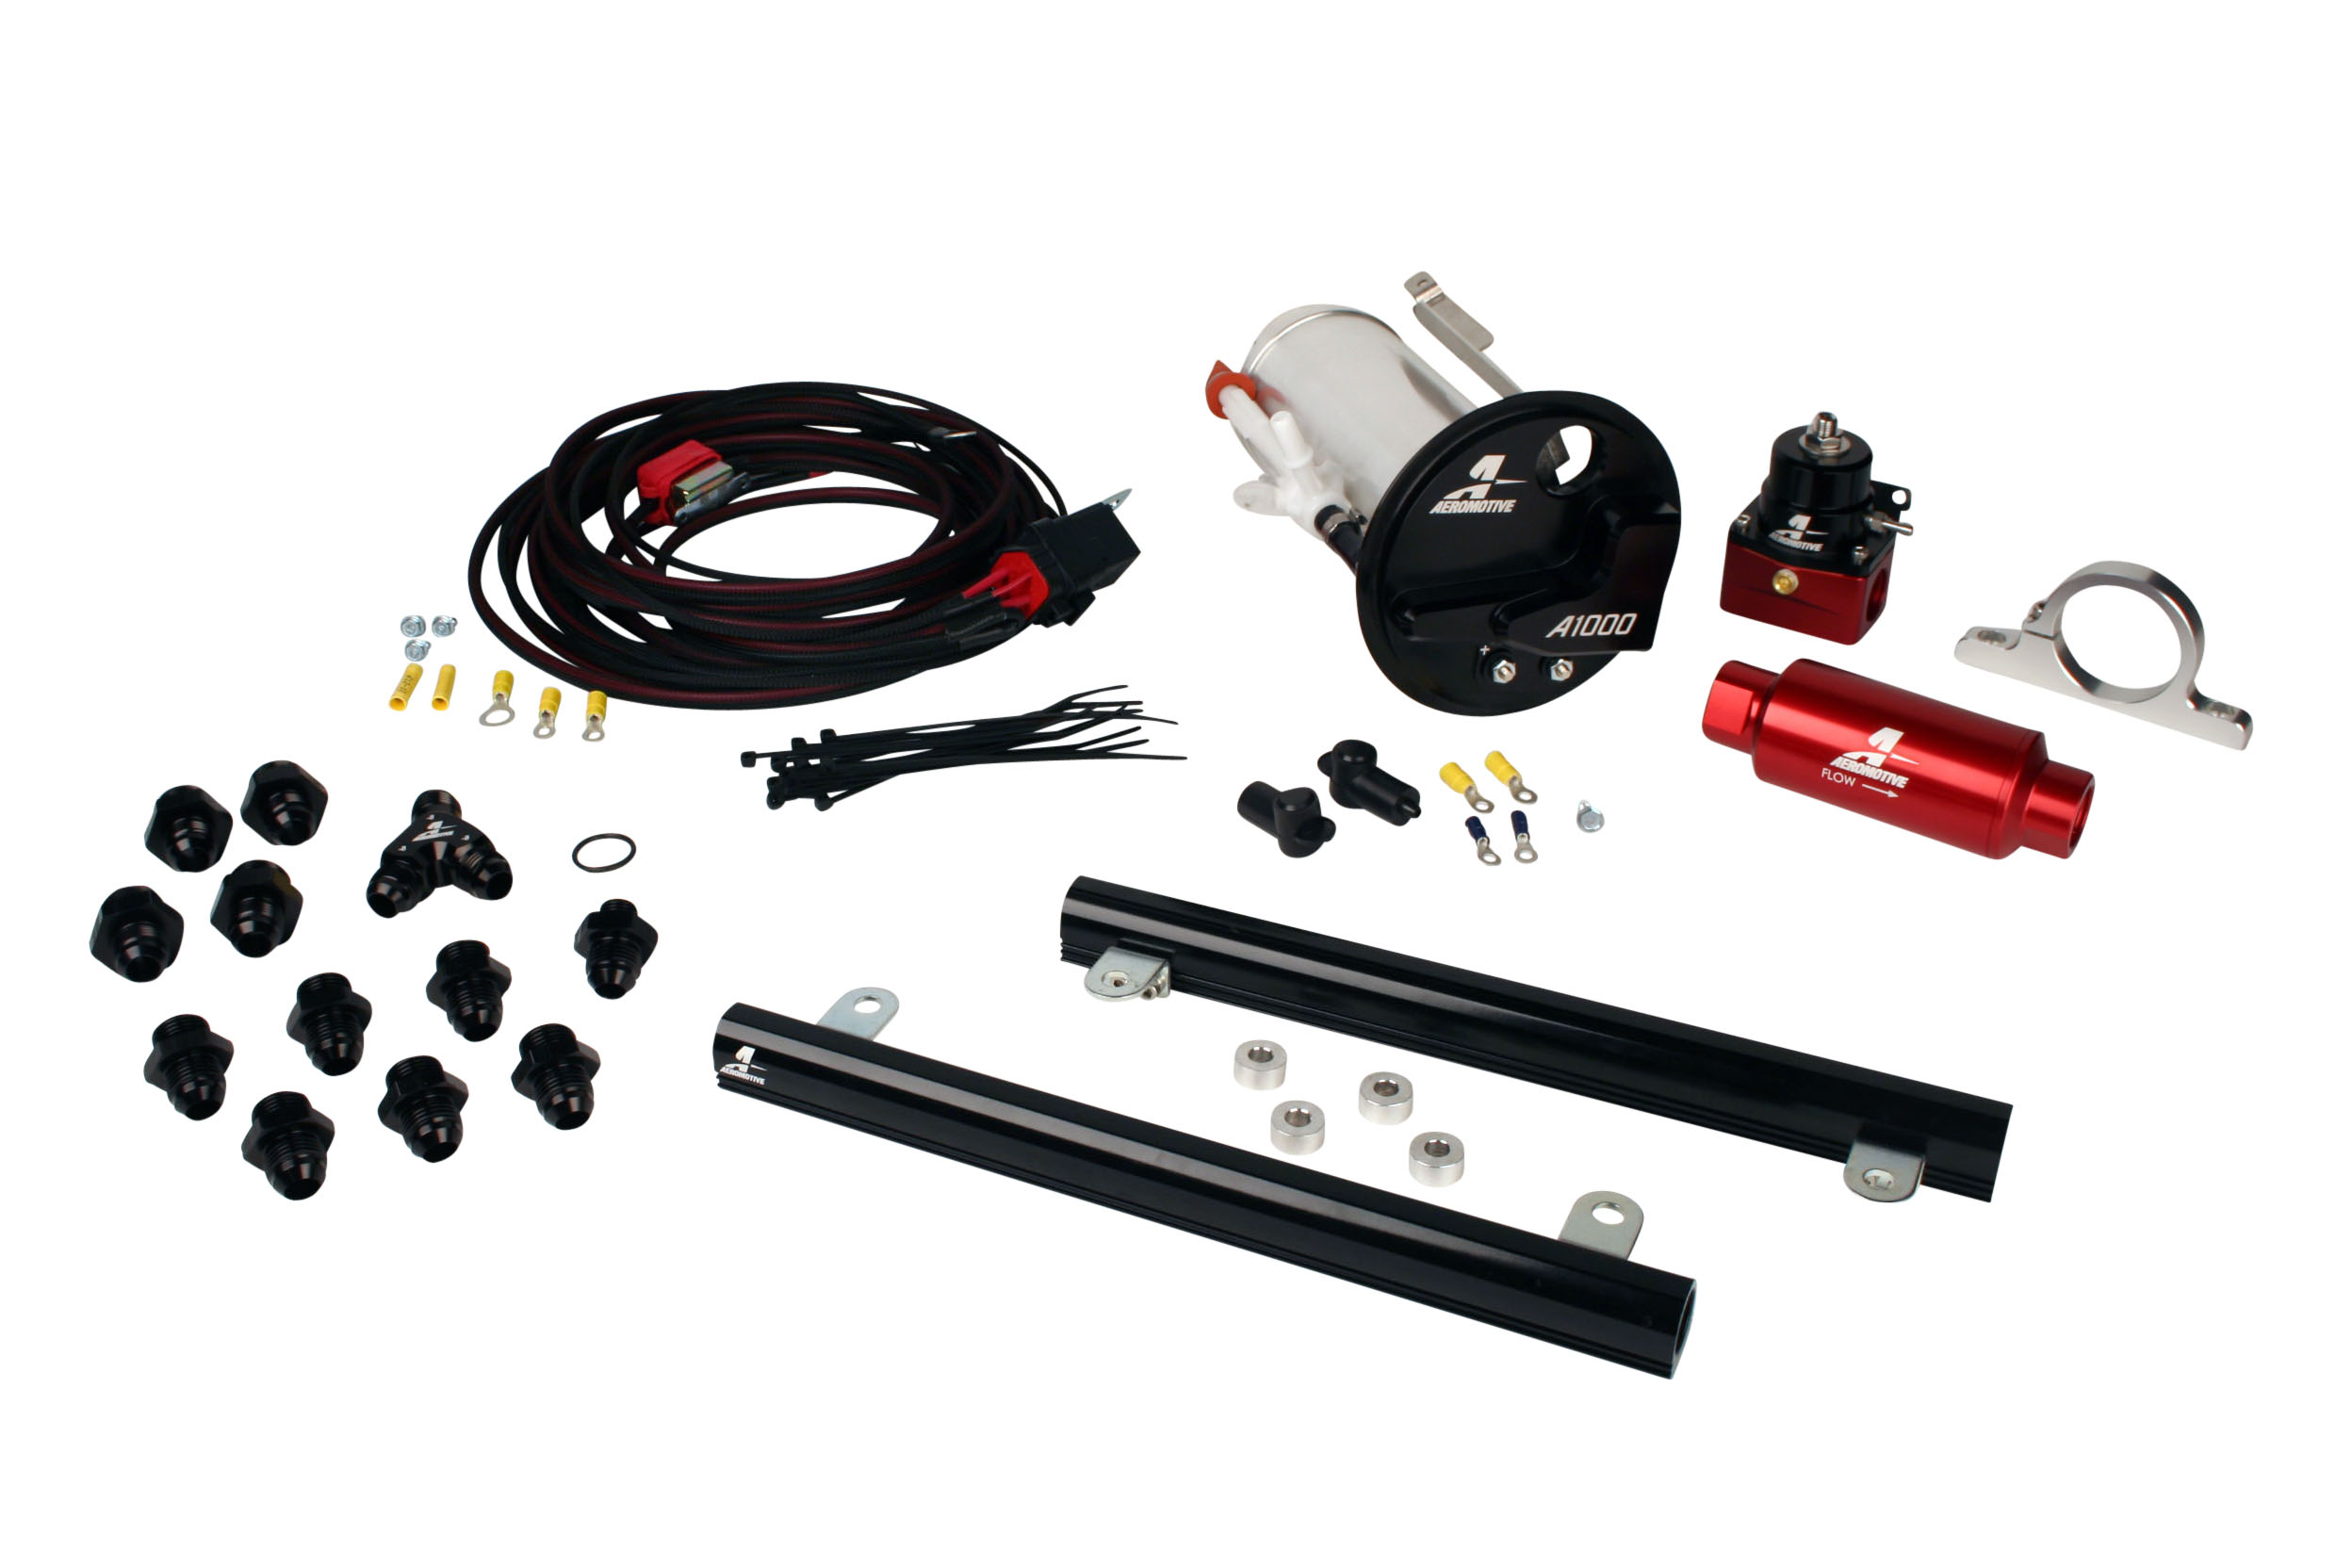 2007-2012 Ford Mustang Shelby GT500 Aeromotive Stealth A1000 Race Fuel System w/5.4L CJ Fuel Rails